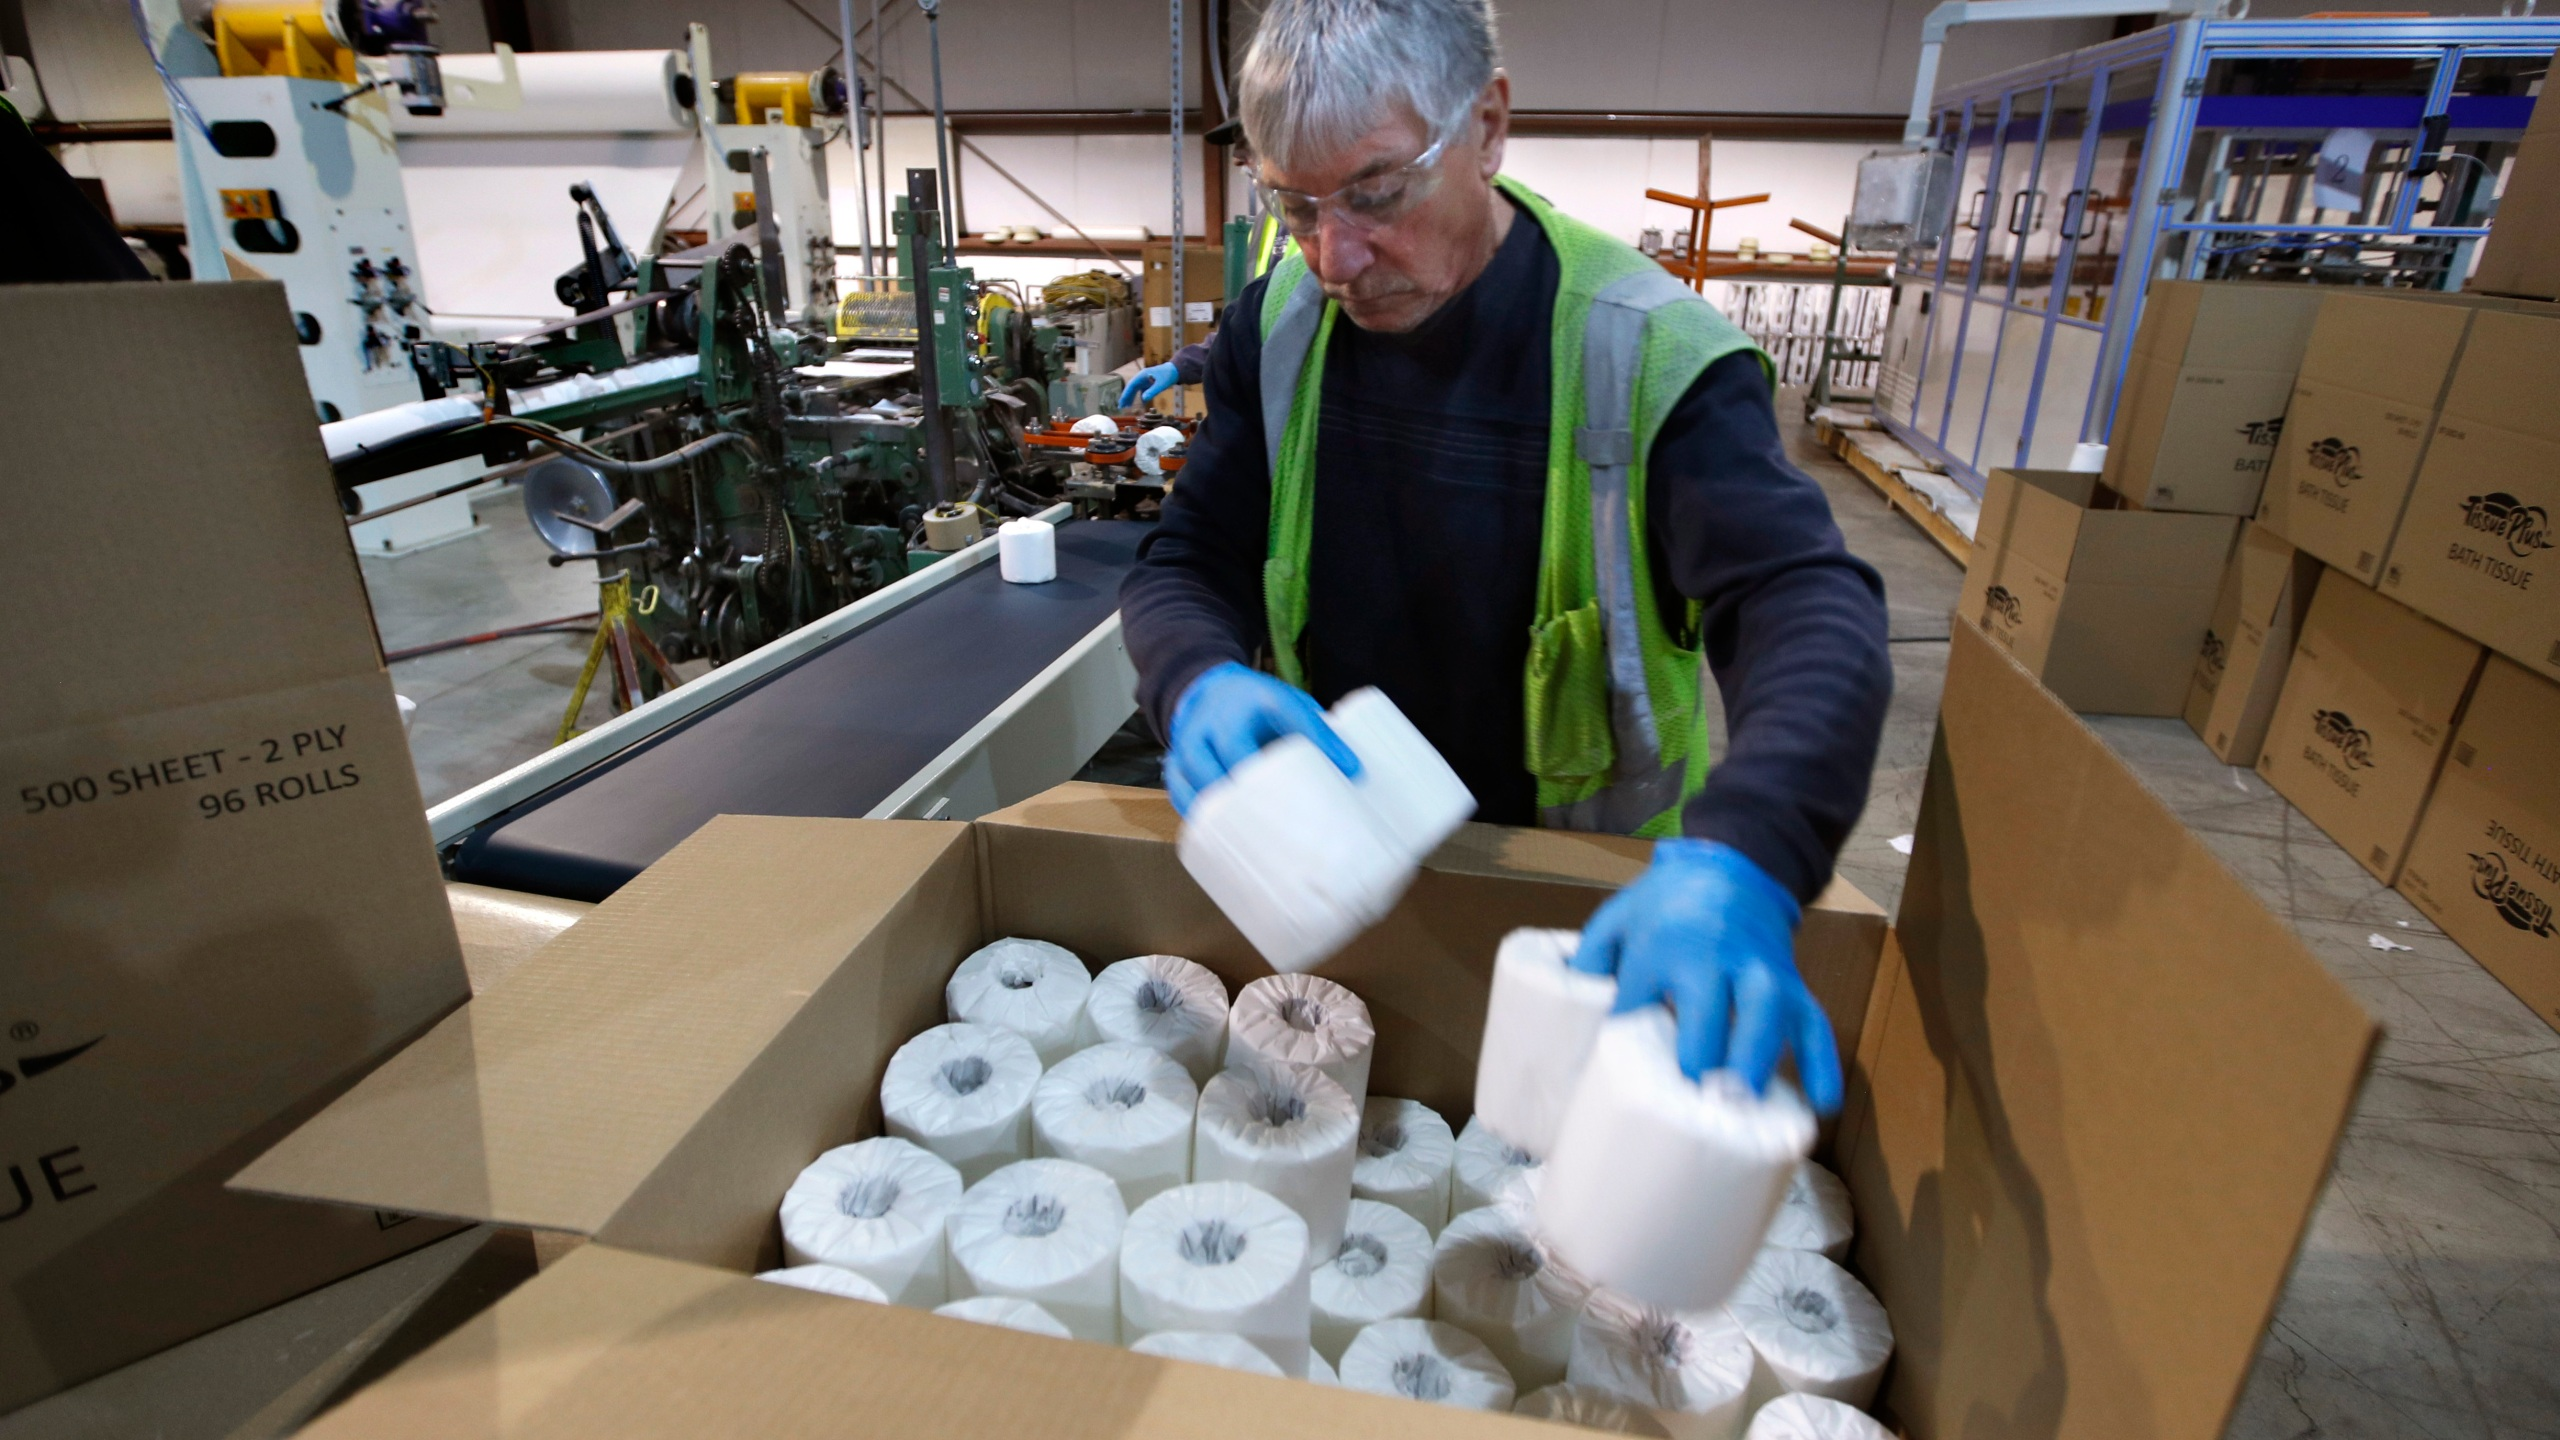 Scott Mitchell fills a box with toilet paper at the Tissue Plus factory, Wednesday, March 18, 2020, in Bangor, Maine. The new company has been unexpectedly busy because of the shortage of toilet paper brought on by hoarders concerned about the coronavirus. (AP Photo/Robert F. Bukaty)